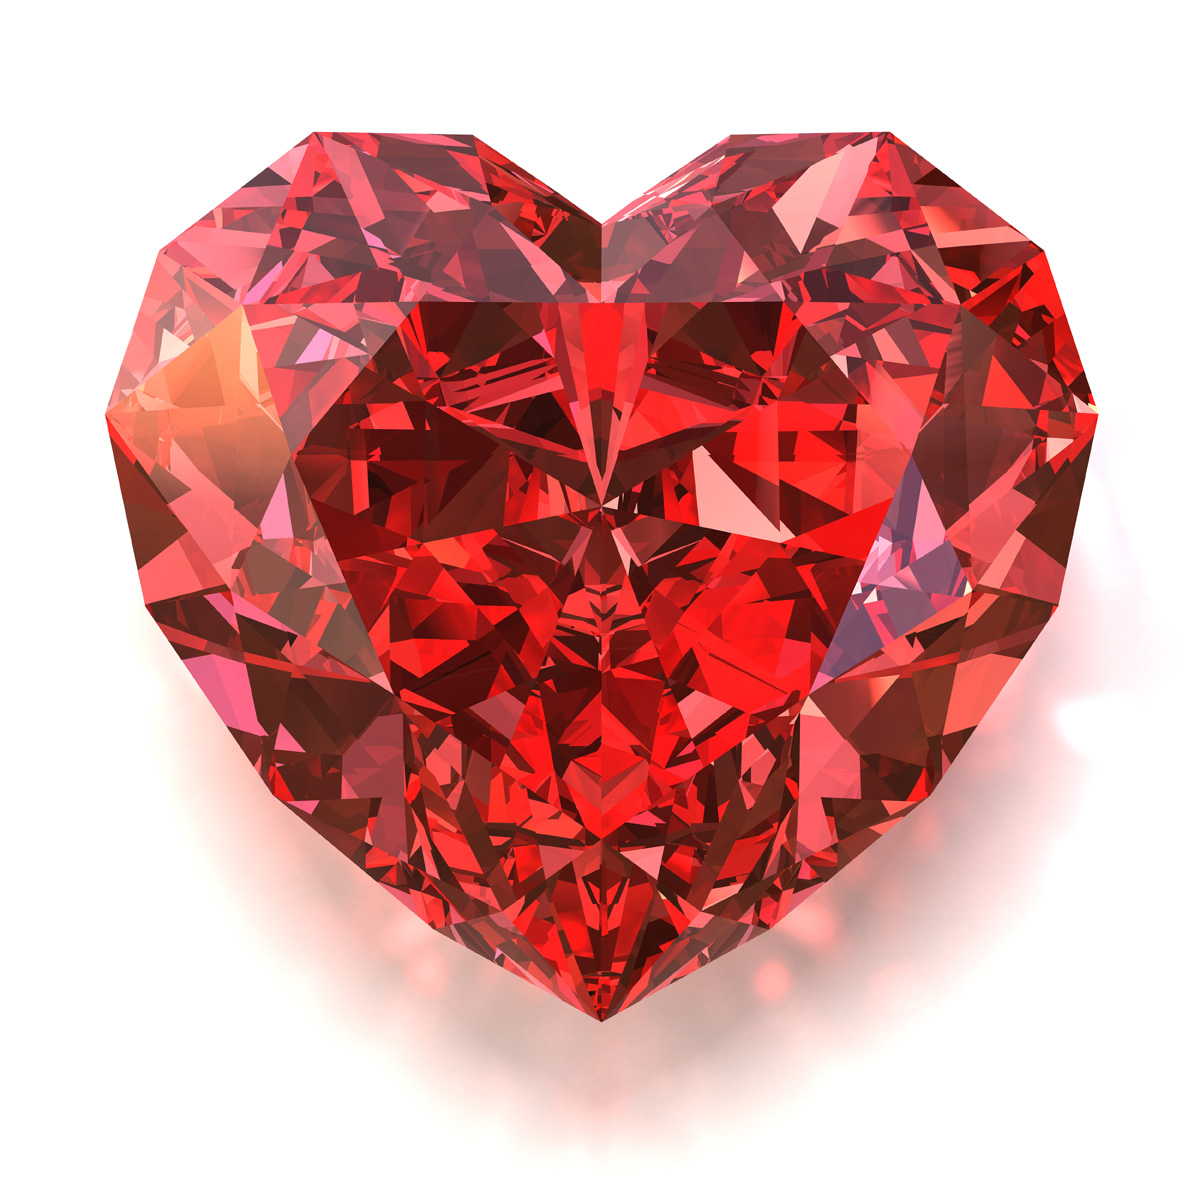 shaped shape com at personal heart getdrawings diamond for use free drawing